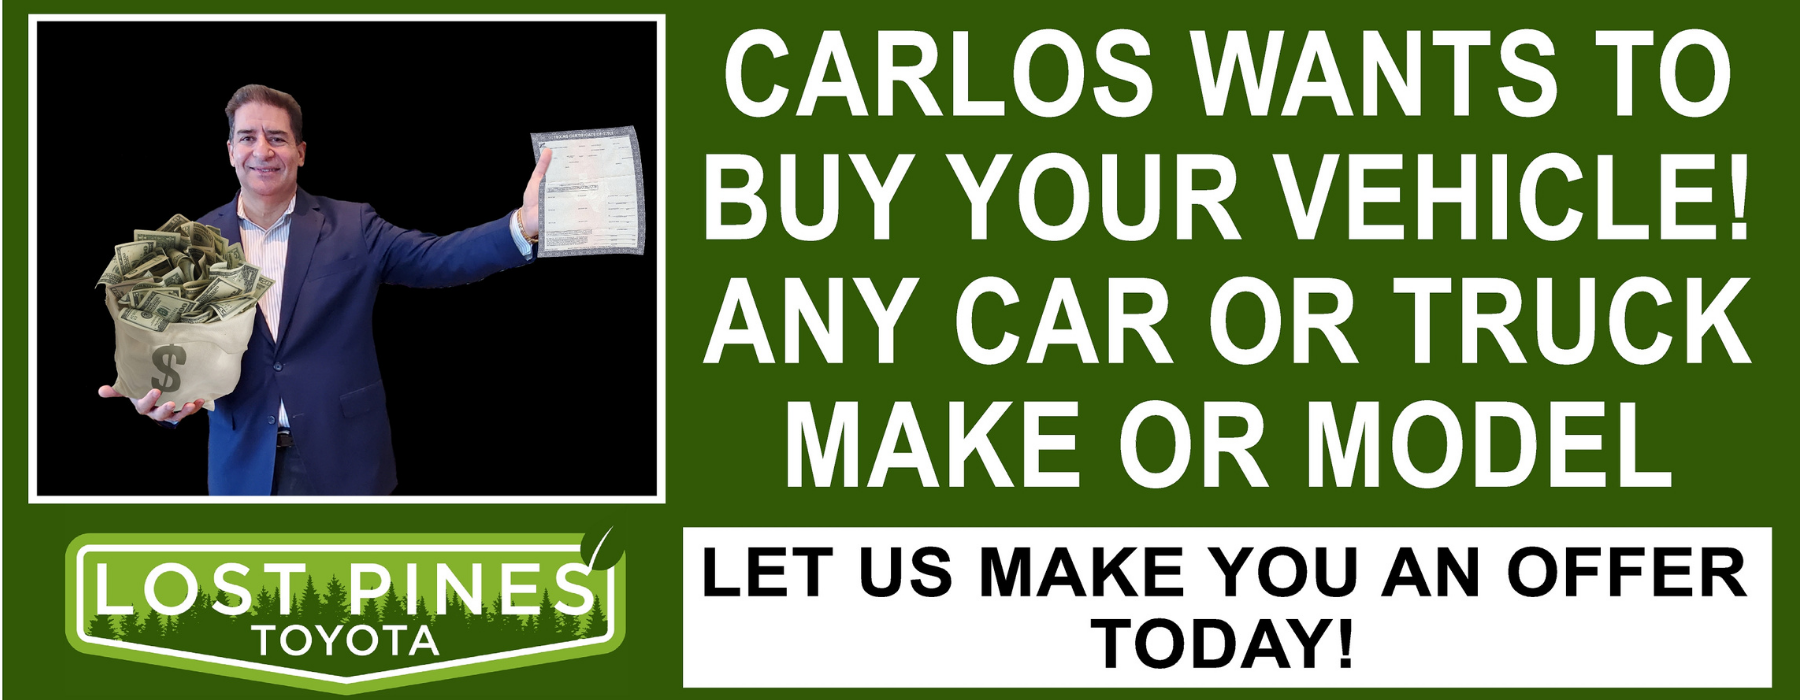 Carlos wants to buy your vehicle web banner